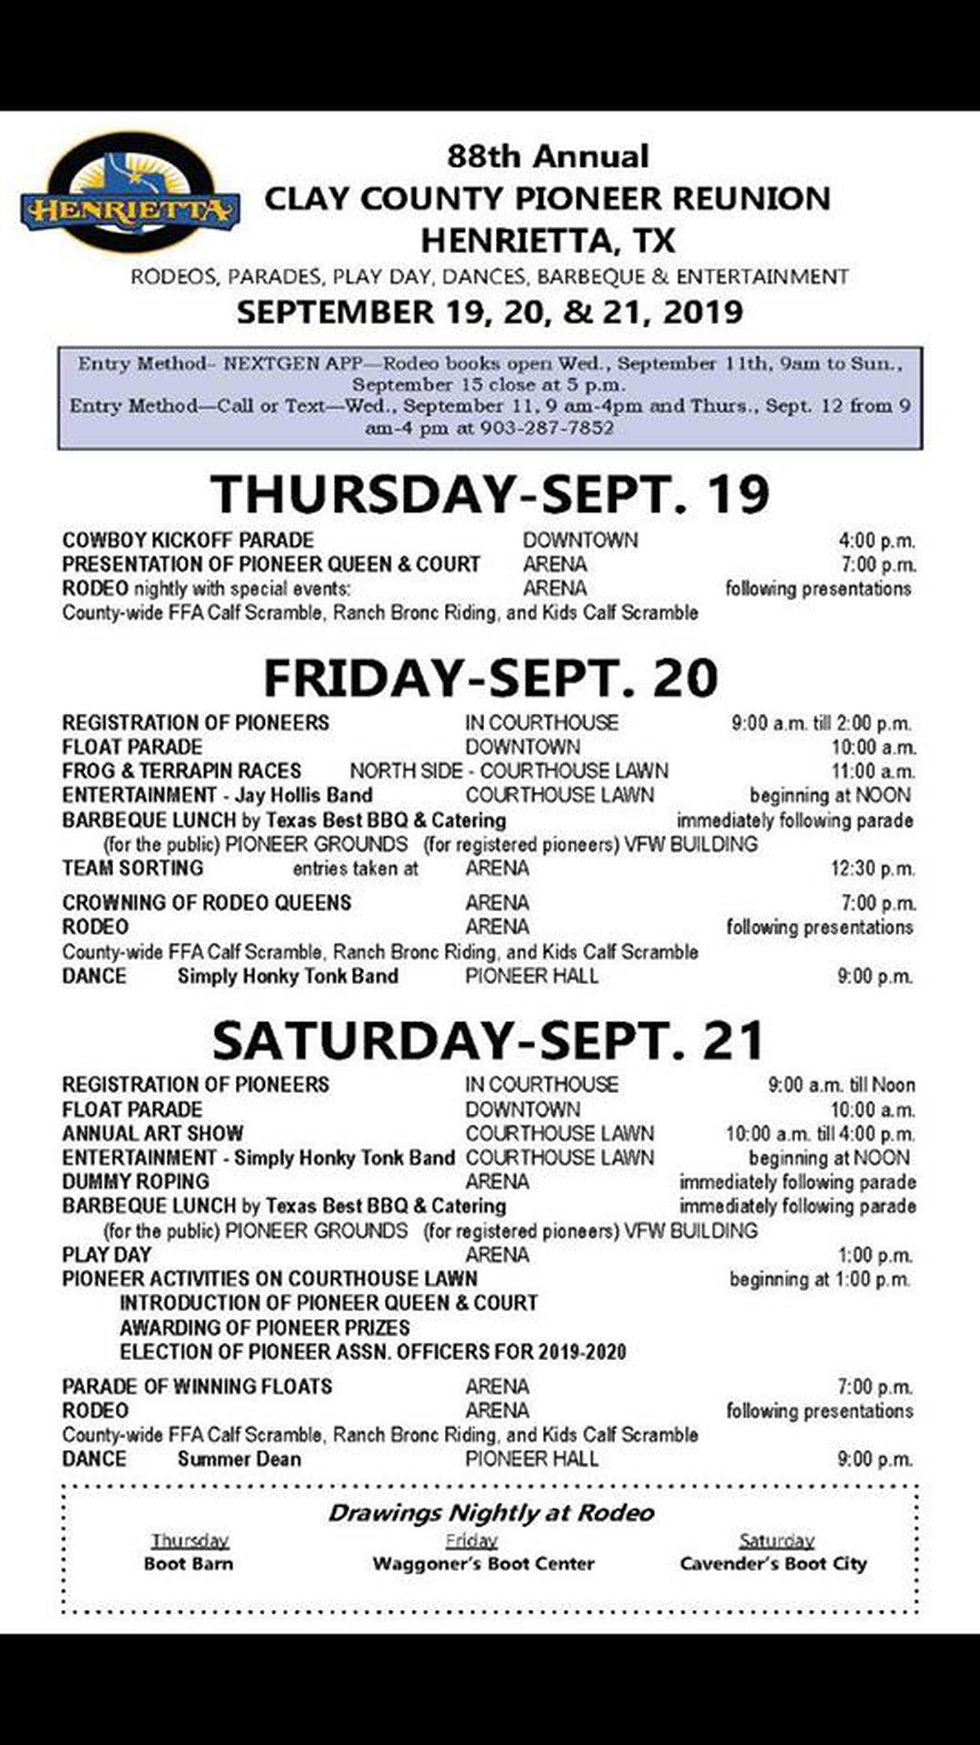 Grab a closer look at all the events happening this weekend in Henrietta as they gear up for...